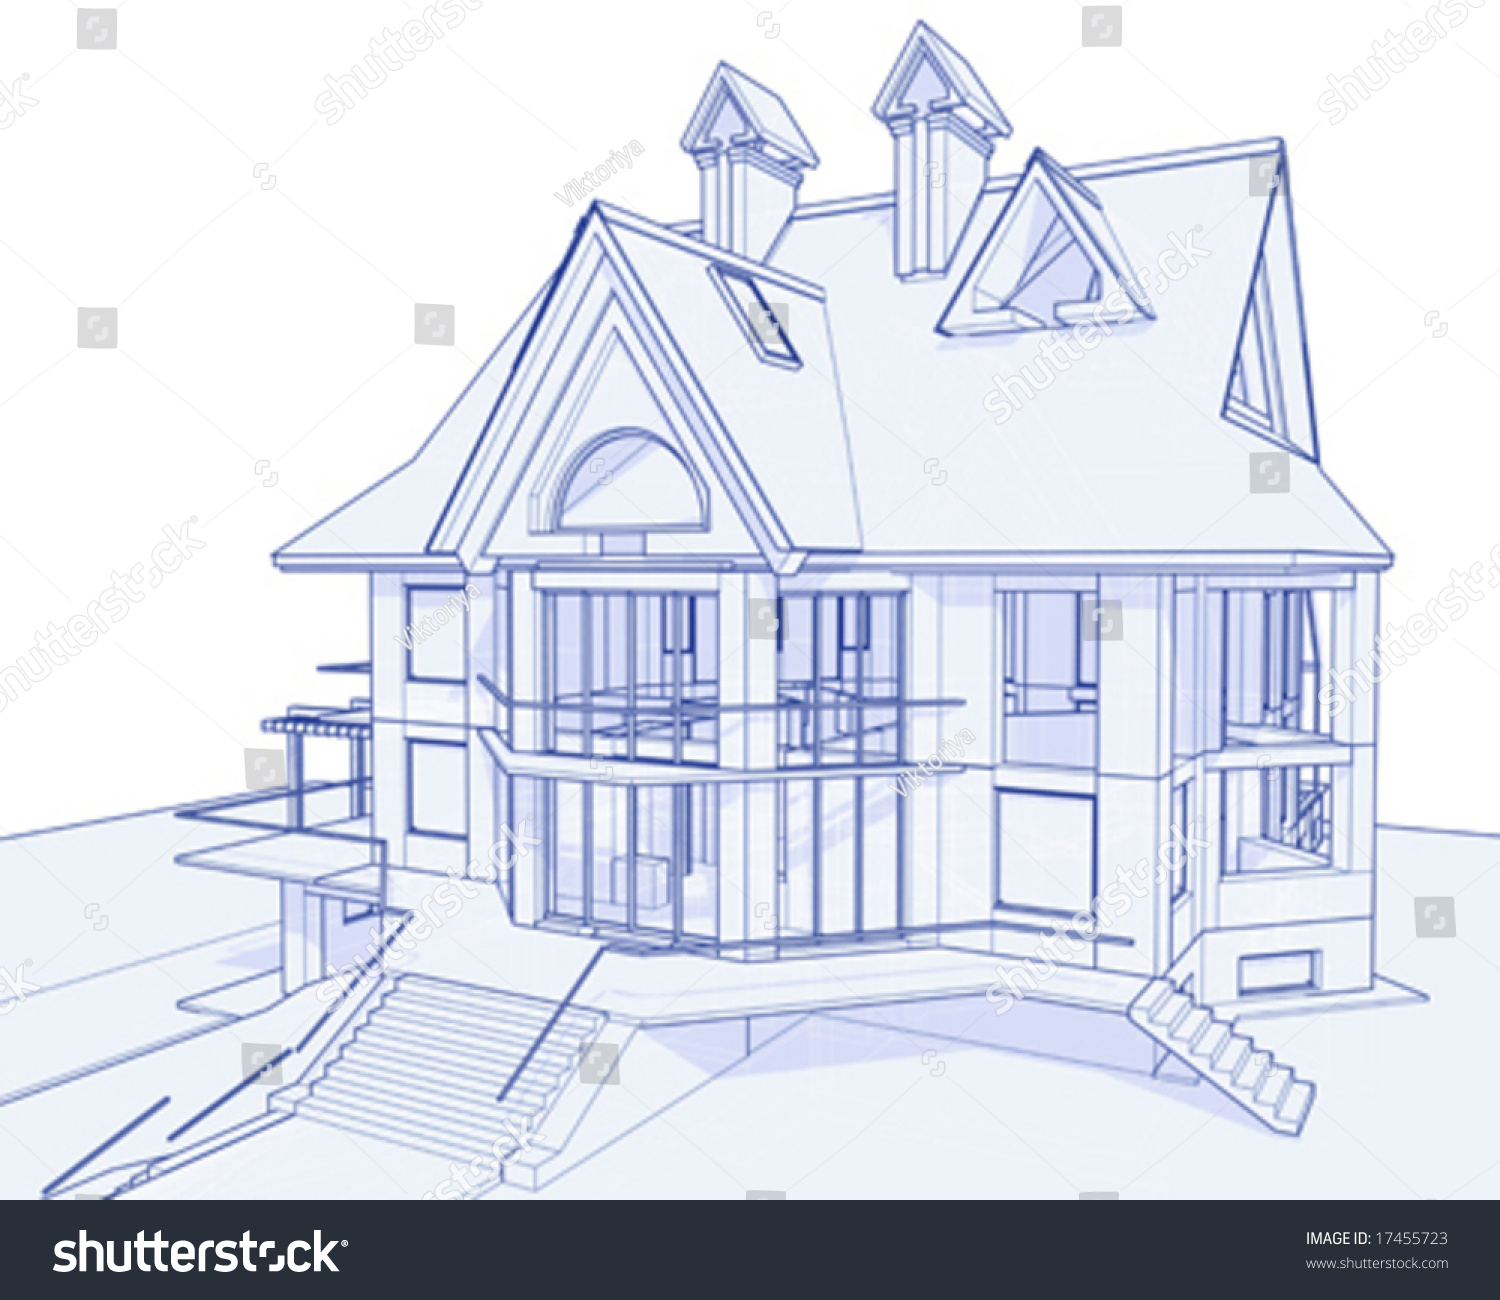 Beautiful 3d Blueprint House Vector Technical Draw Stock Vector 17455723    Shutterstock